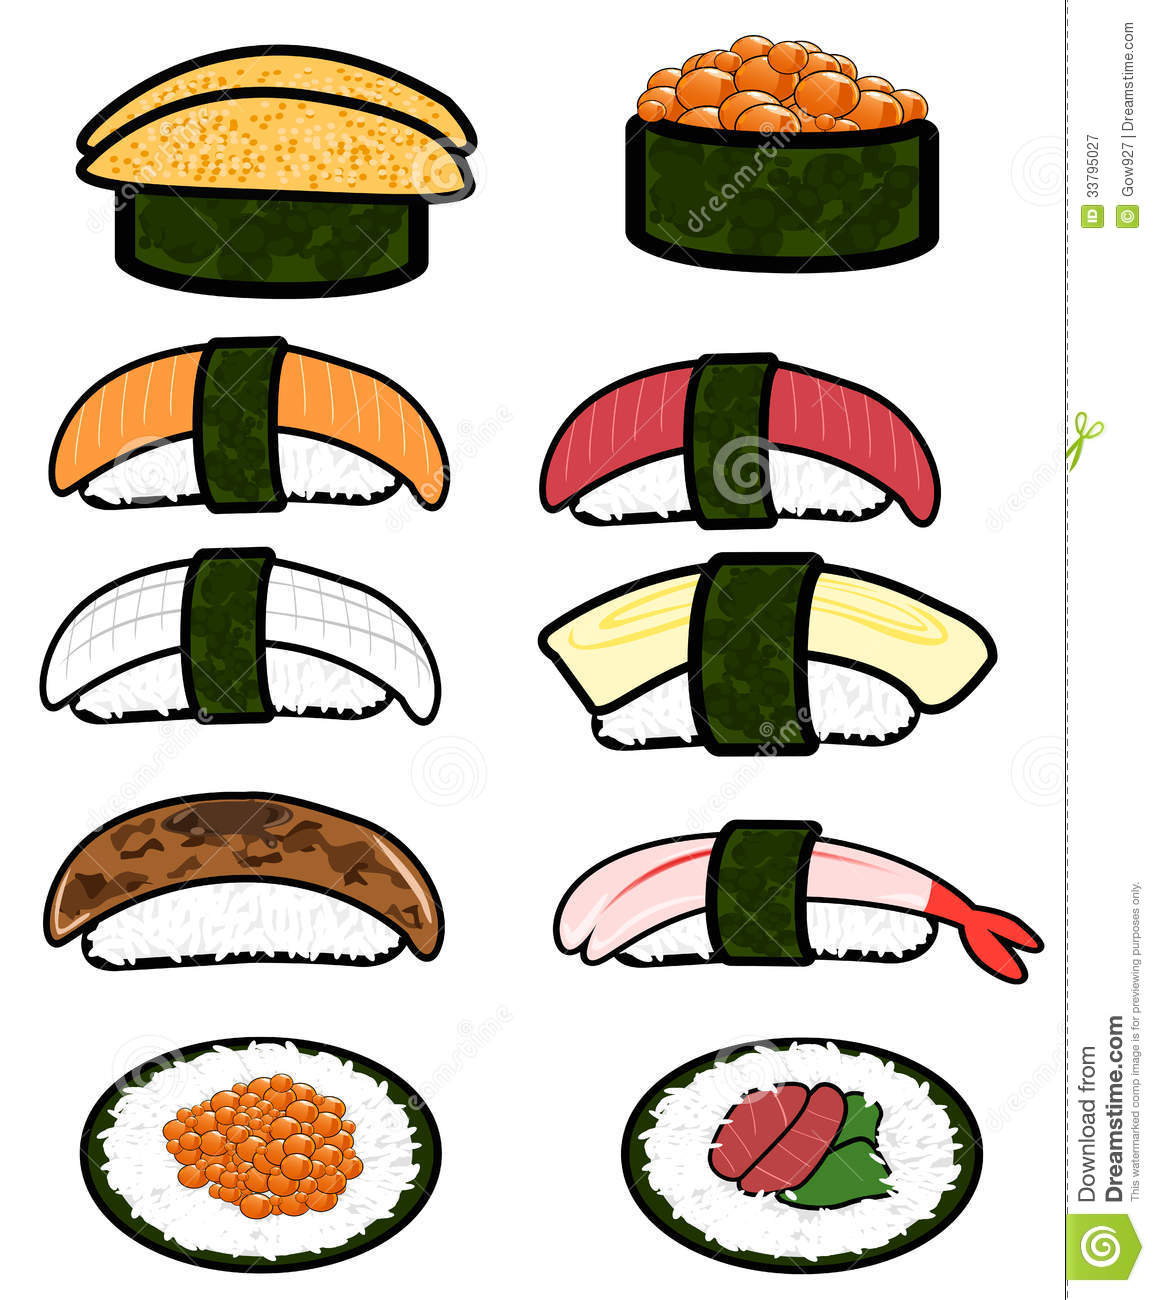 clipart icon collection - photo #35